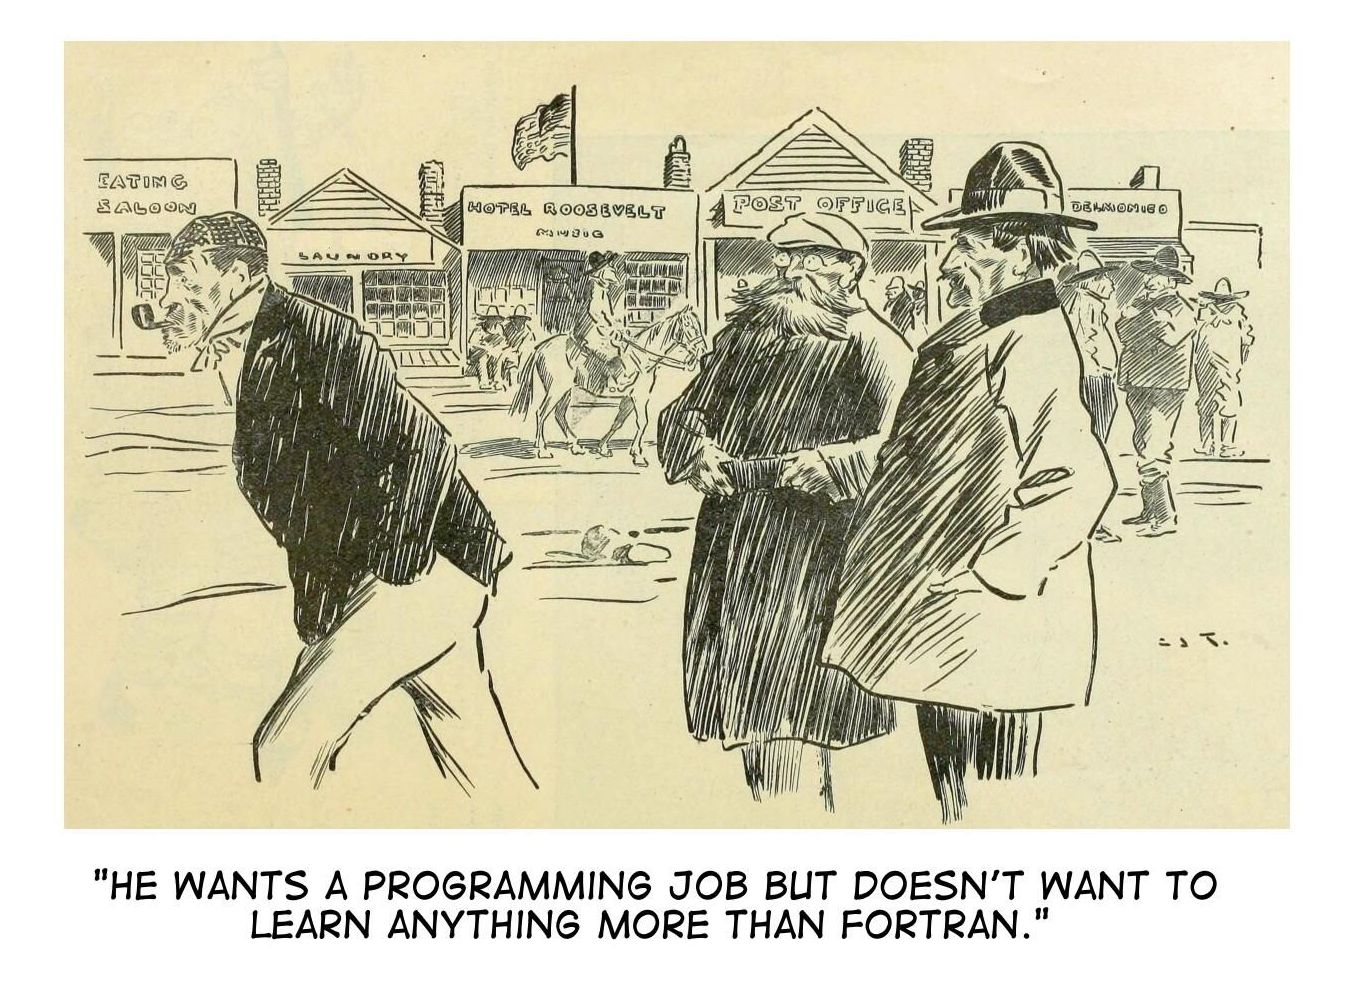 wants a programming job3